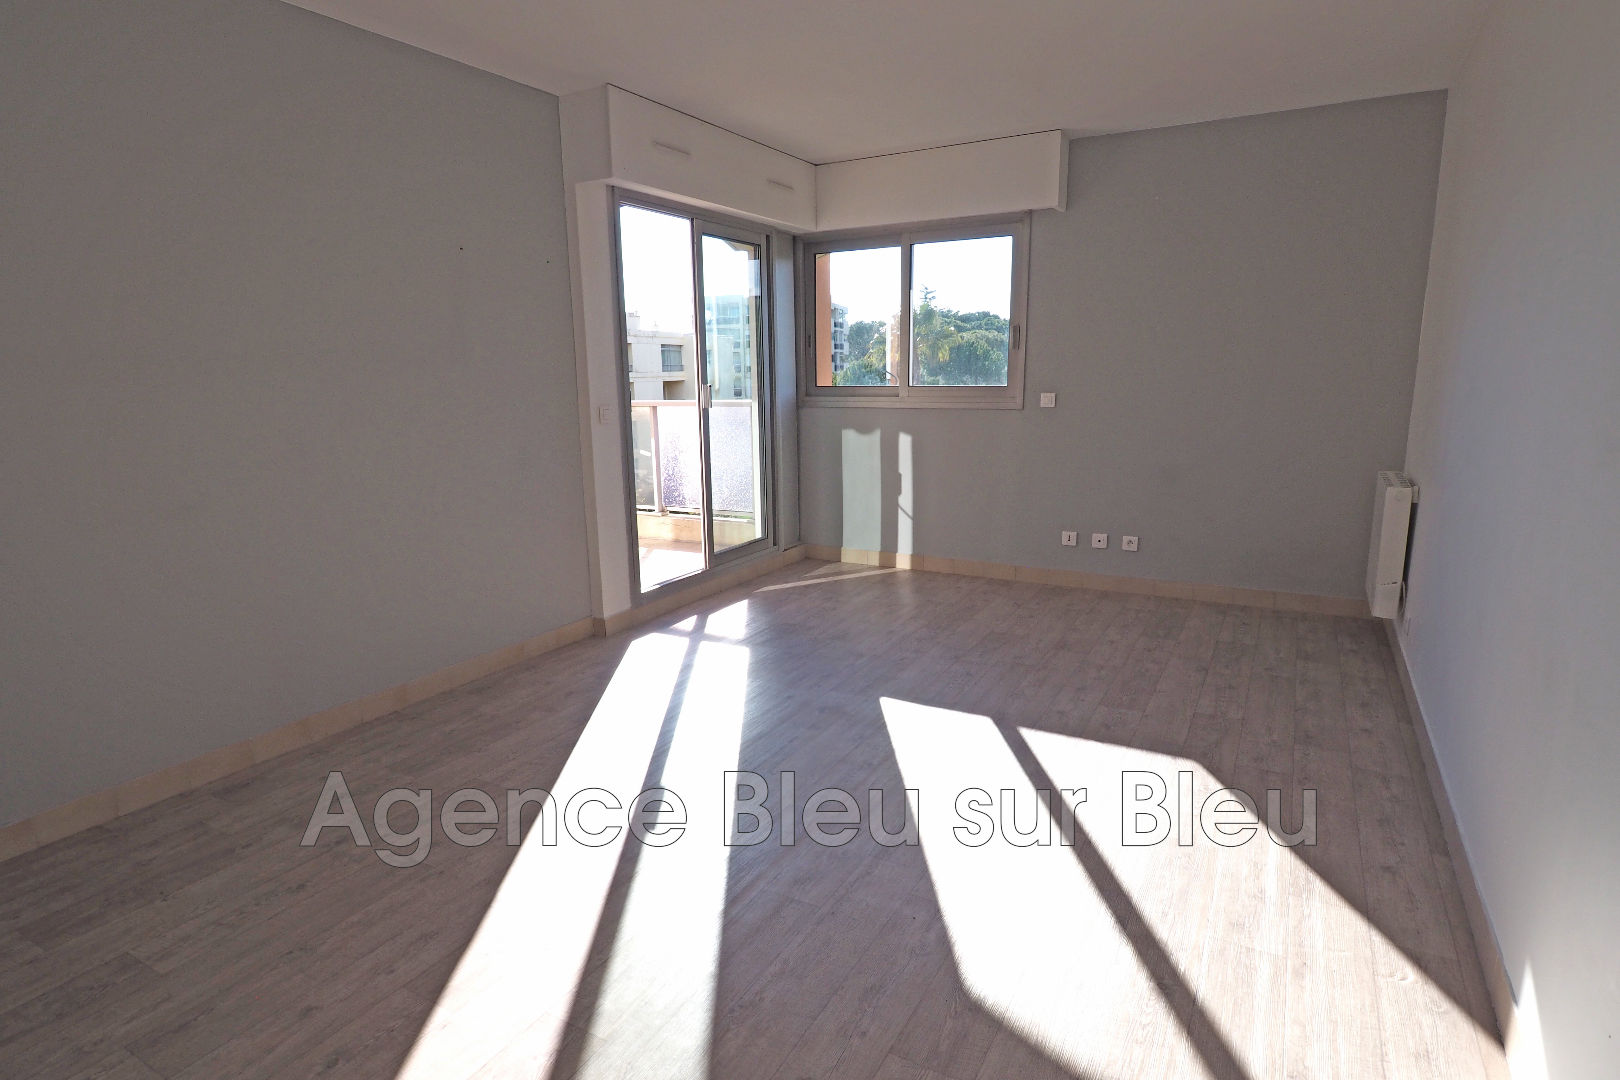 Appartement antibes rabiac achat appartement 2 pi ces 48 m for Achat maison antibes